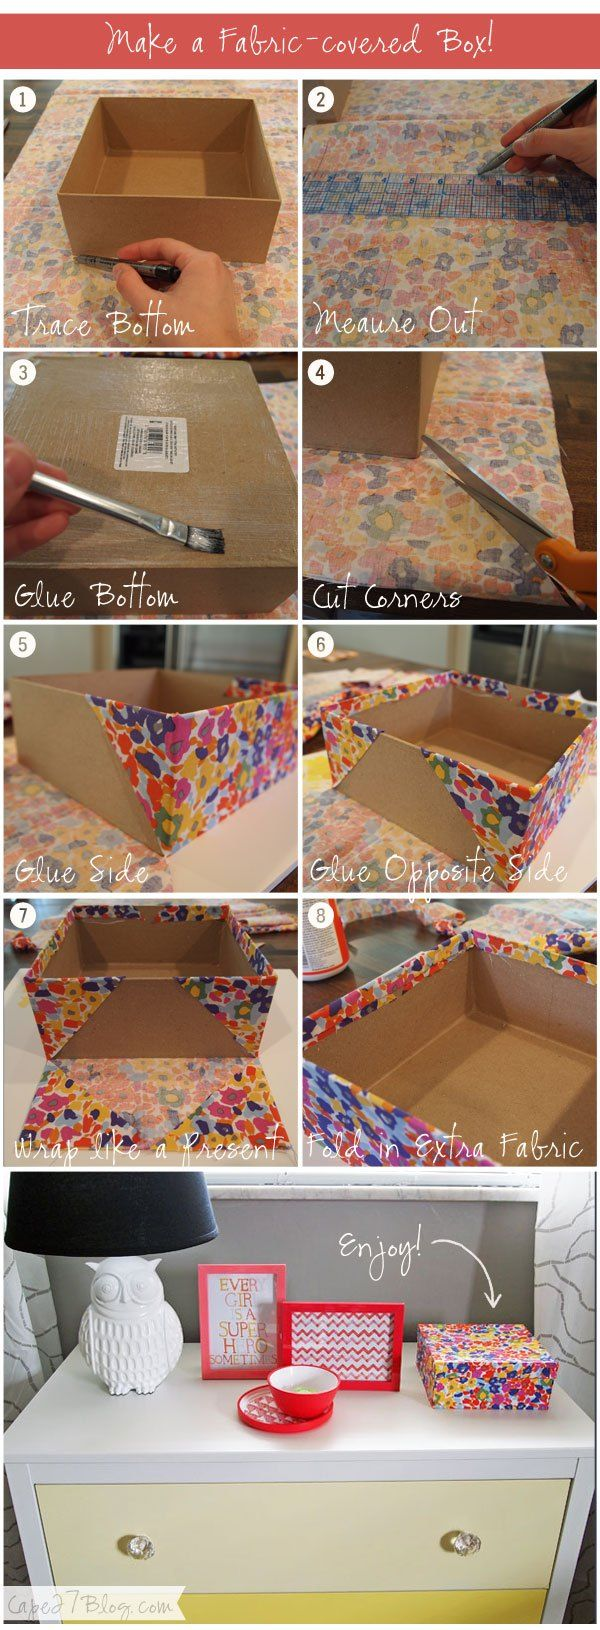 An easy way to cover boxes with paper or fabric to make them look more appealing on the shelves of my craft room.